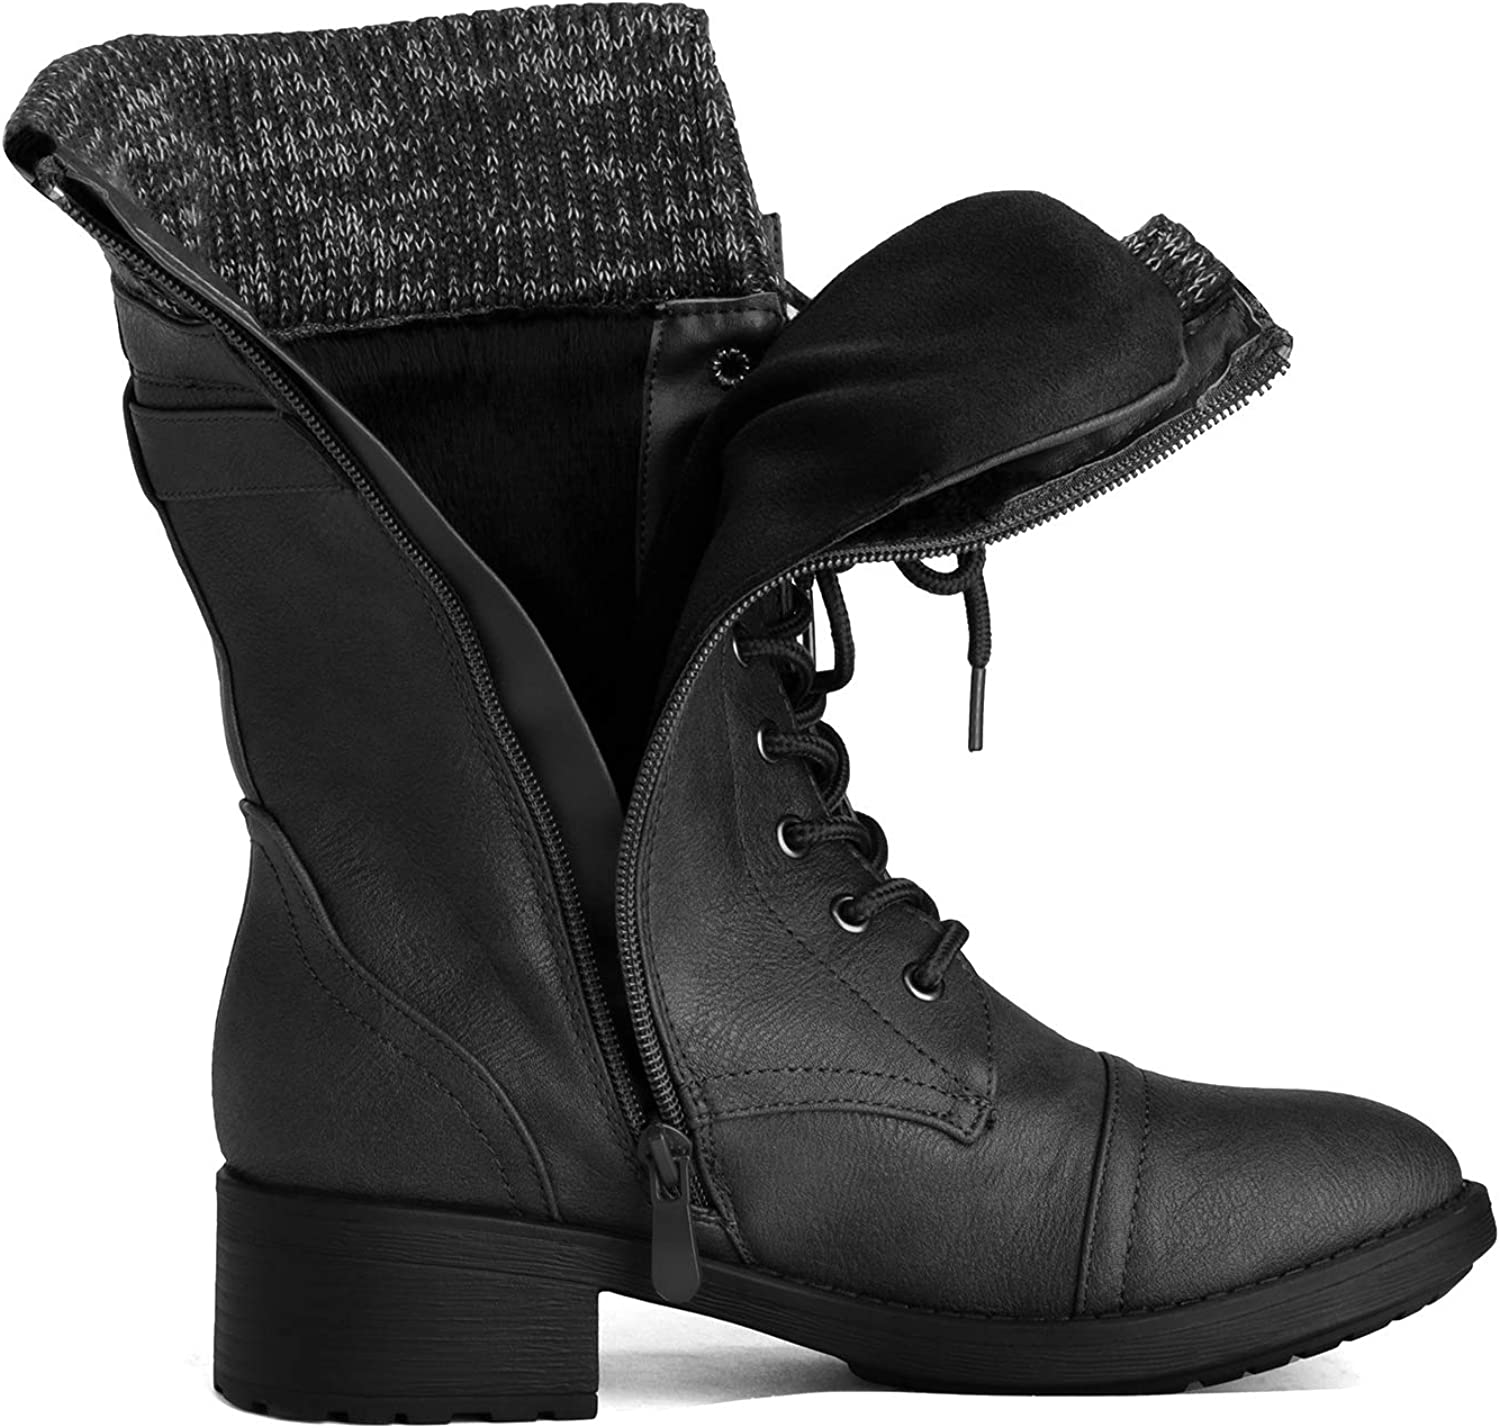 DREAM PAIRS Women's Winter Lace up Mid Calf Combat Riding Military Boots